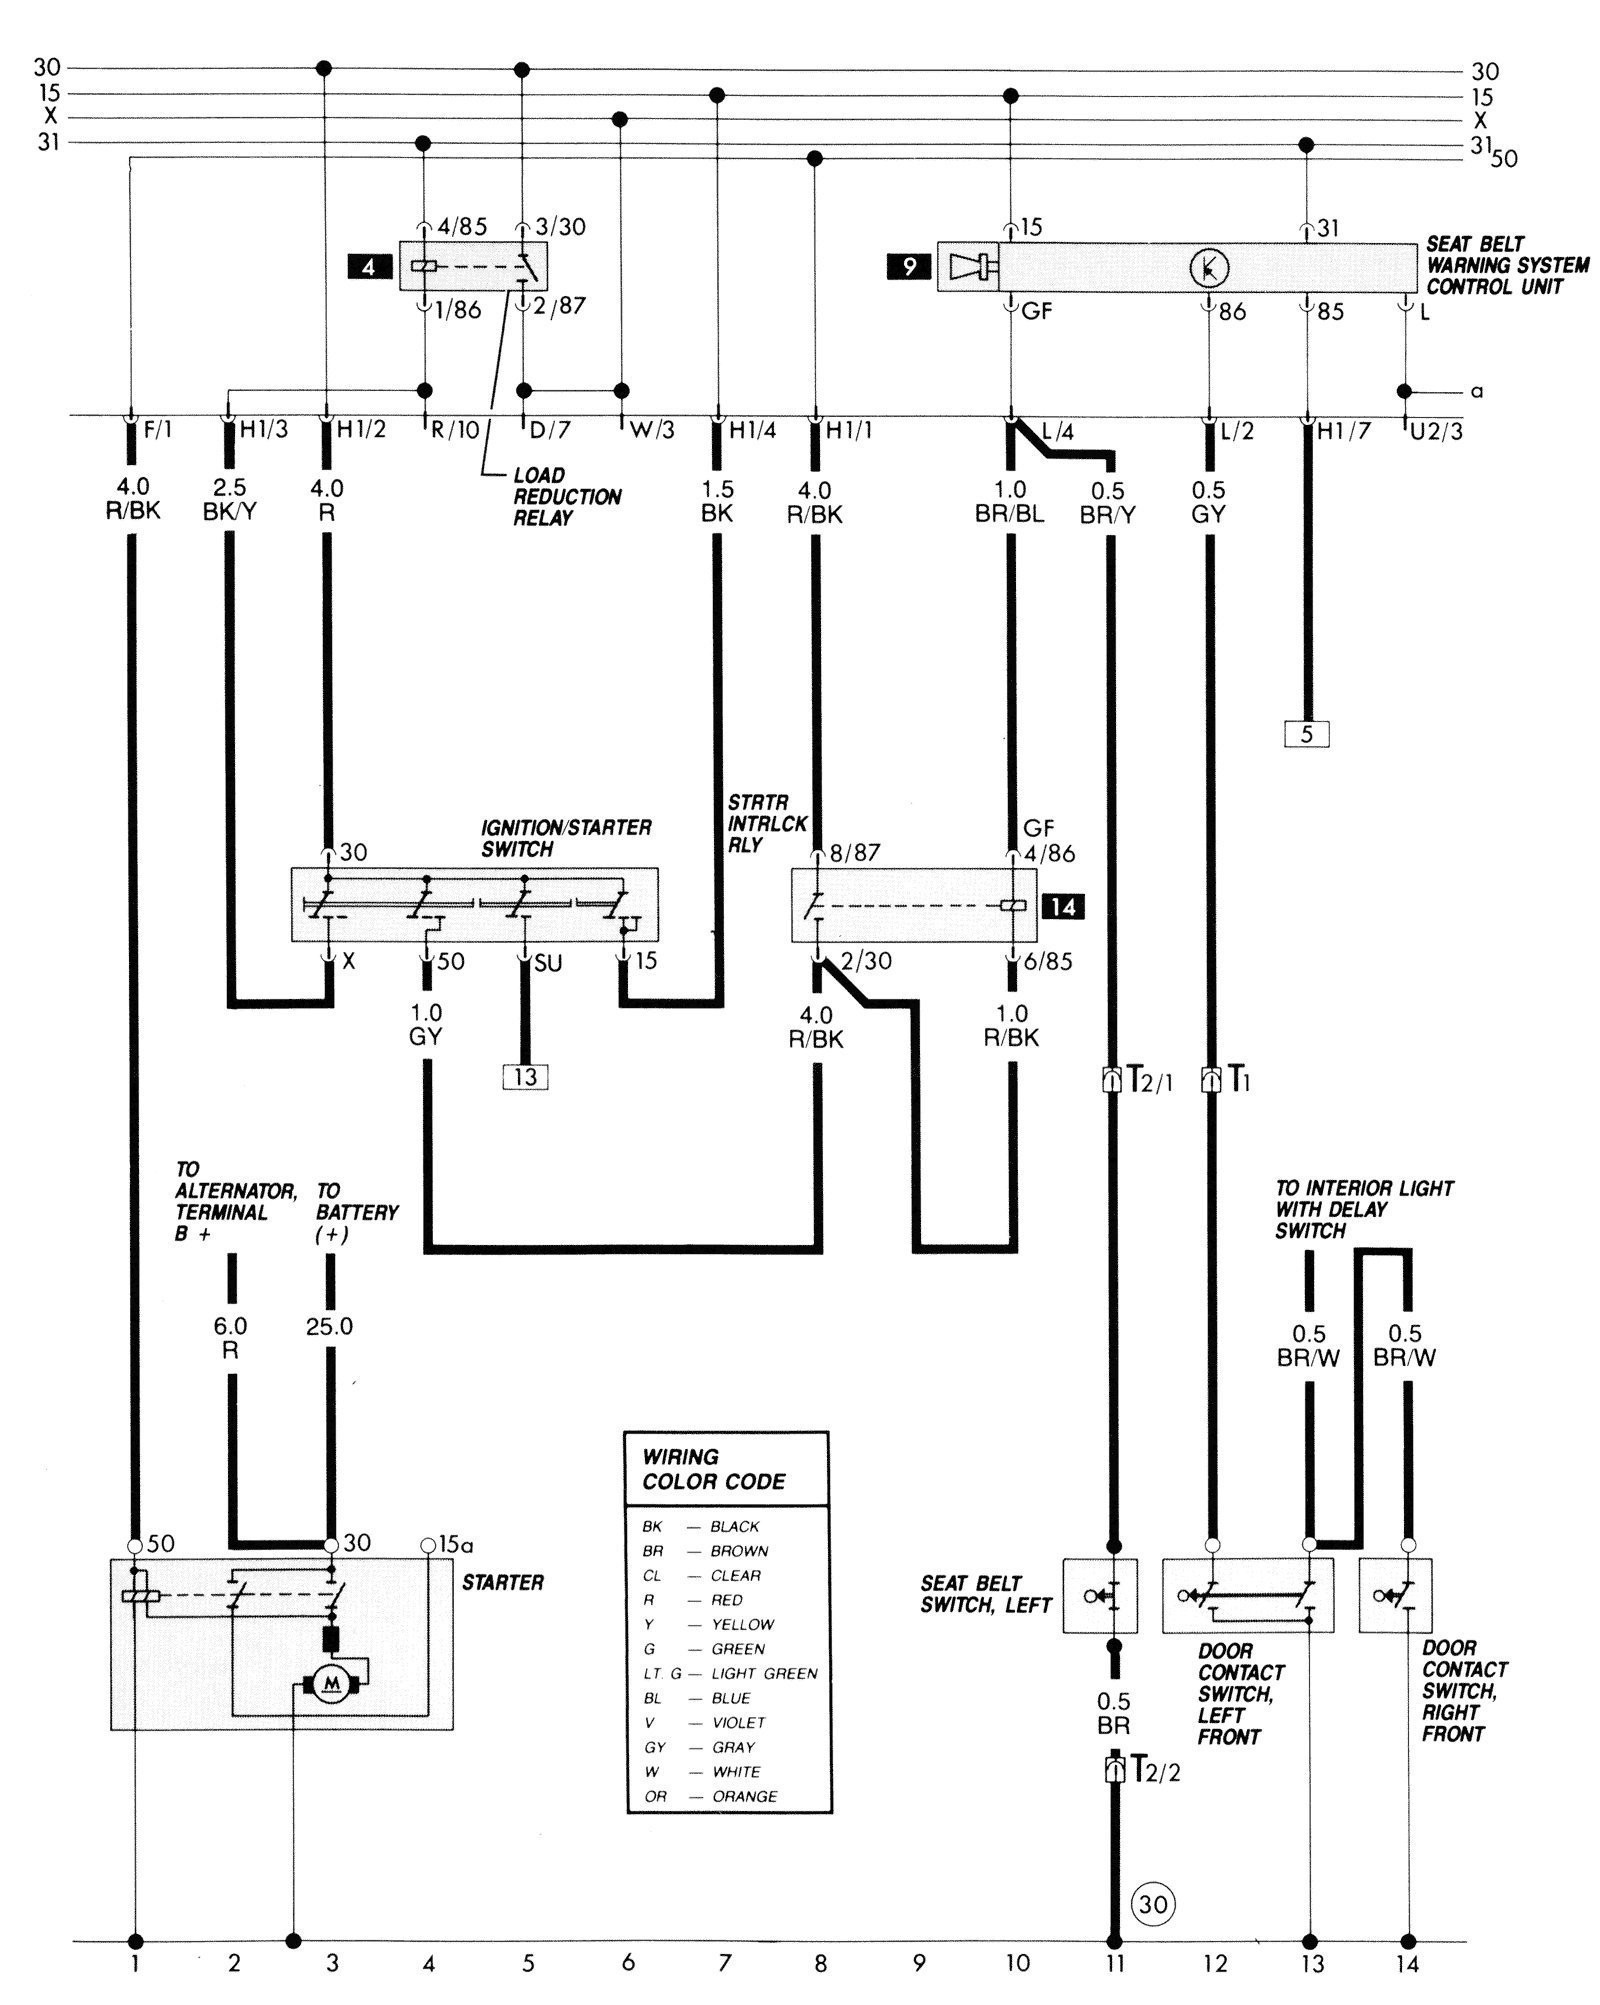 1990 vw jetta wiring diagram data schema u2022 rh inboxme co